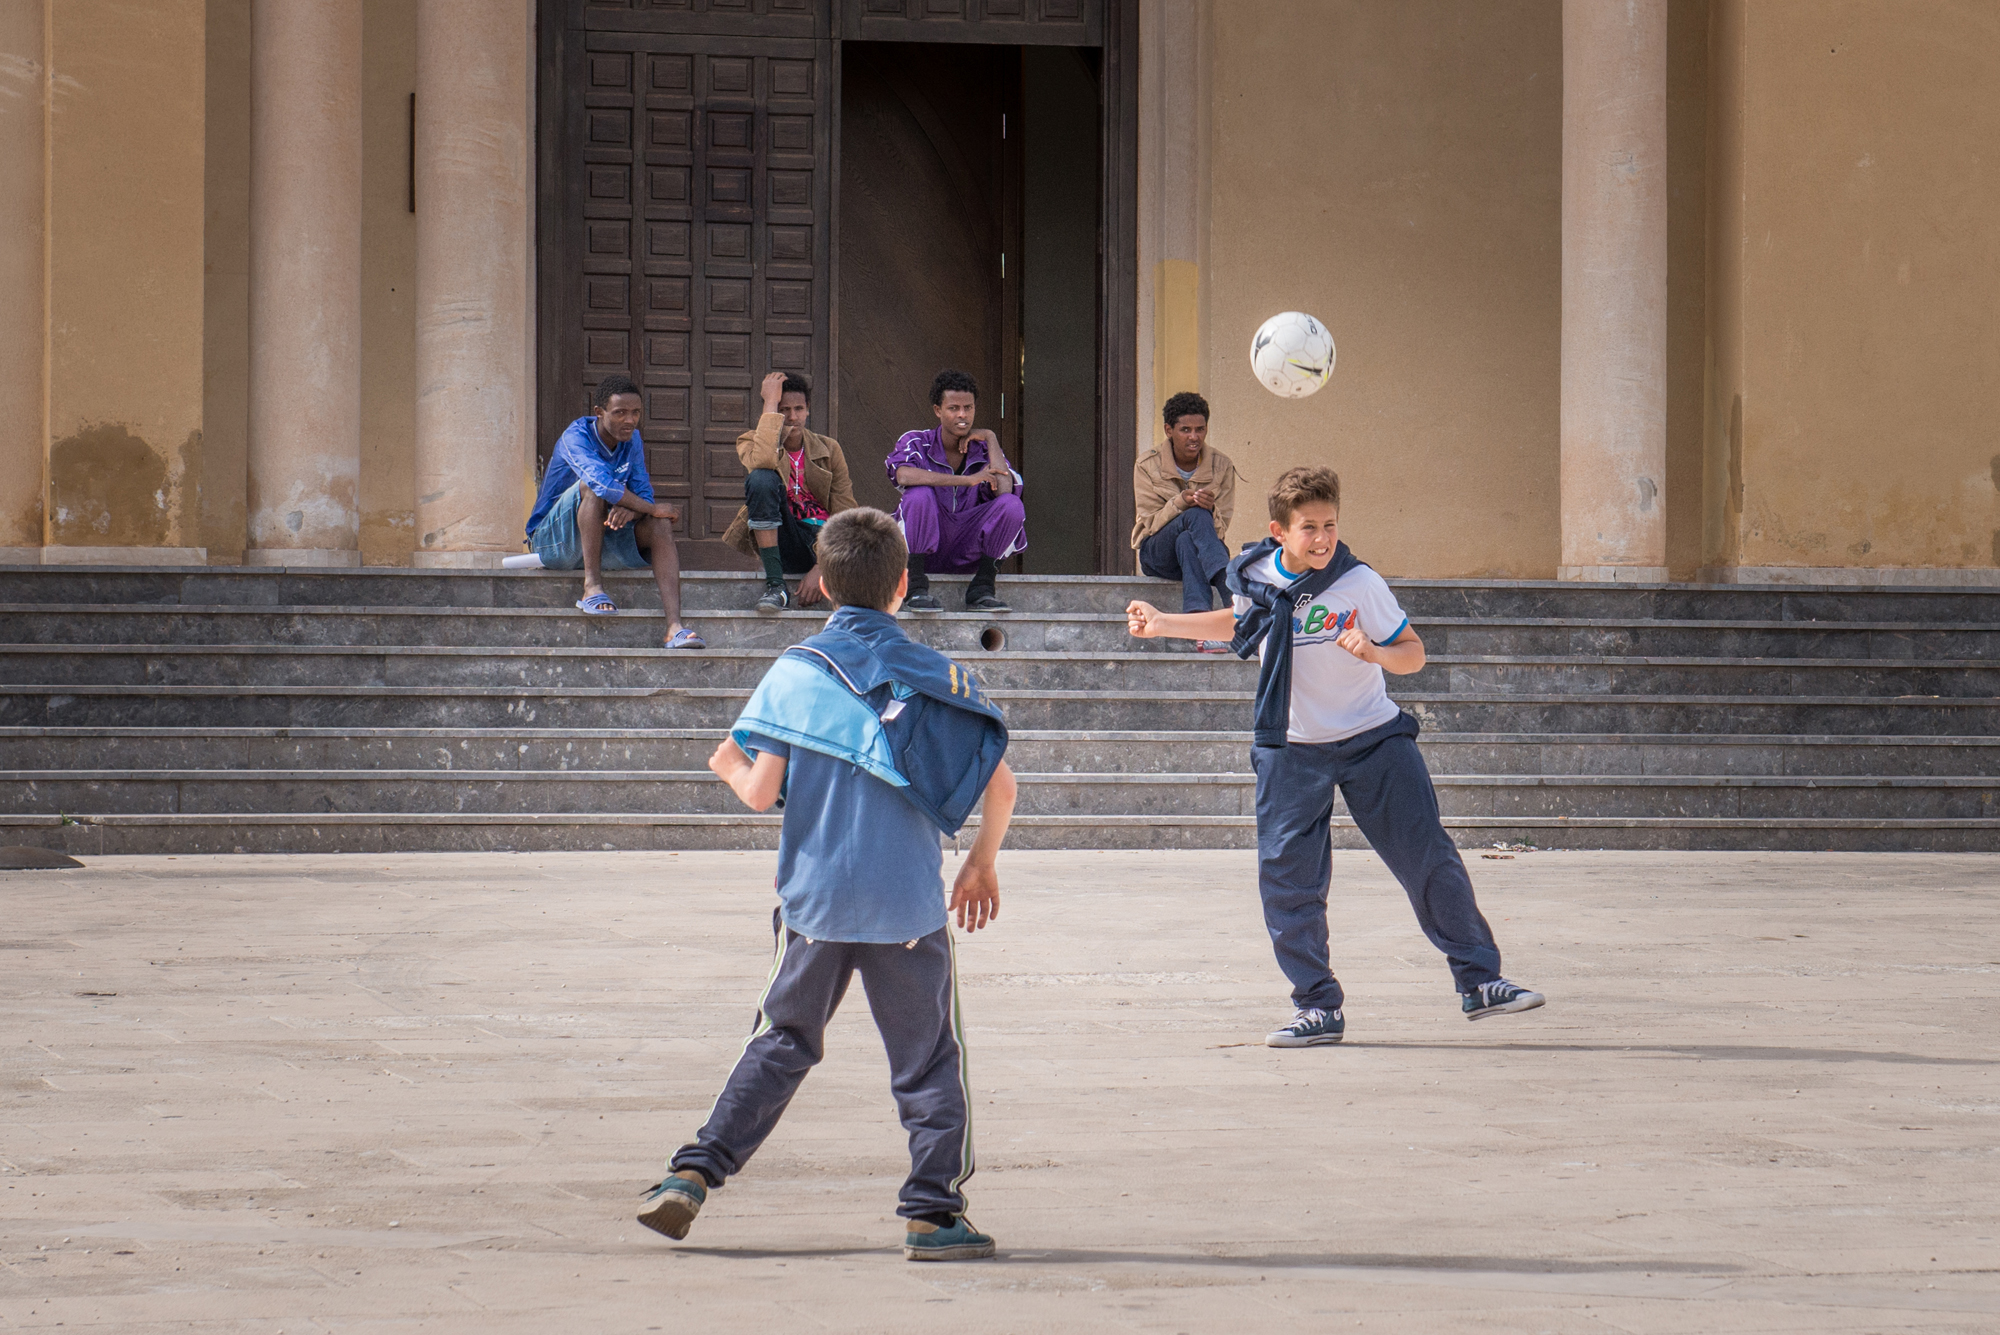 Young refugees sit on the church steps and watch a group of Italian kids playing football.